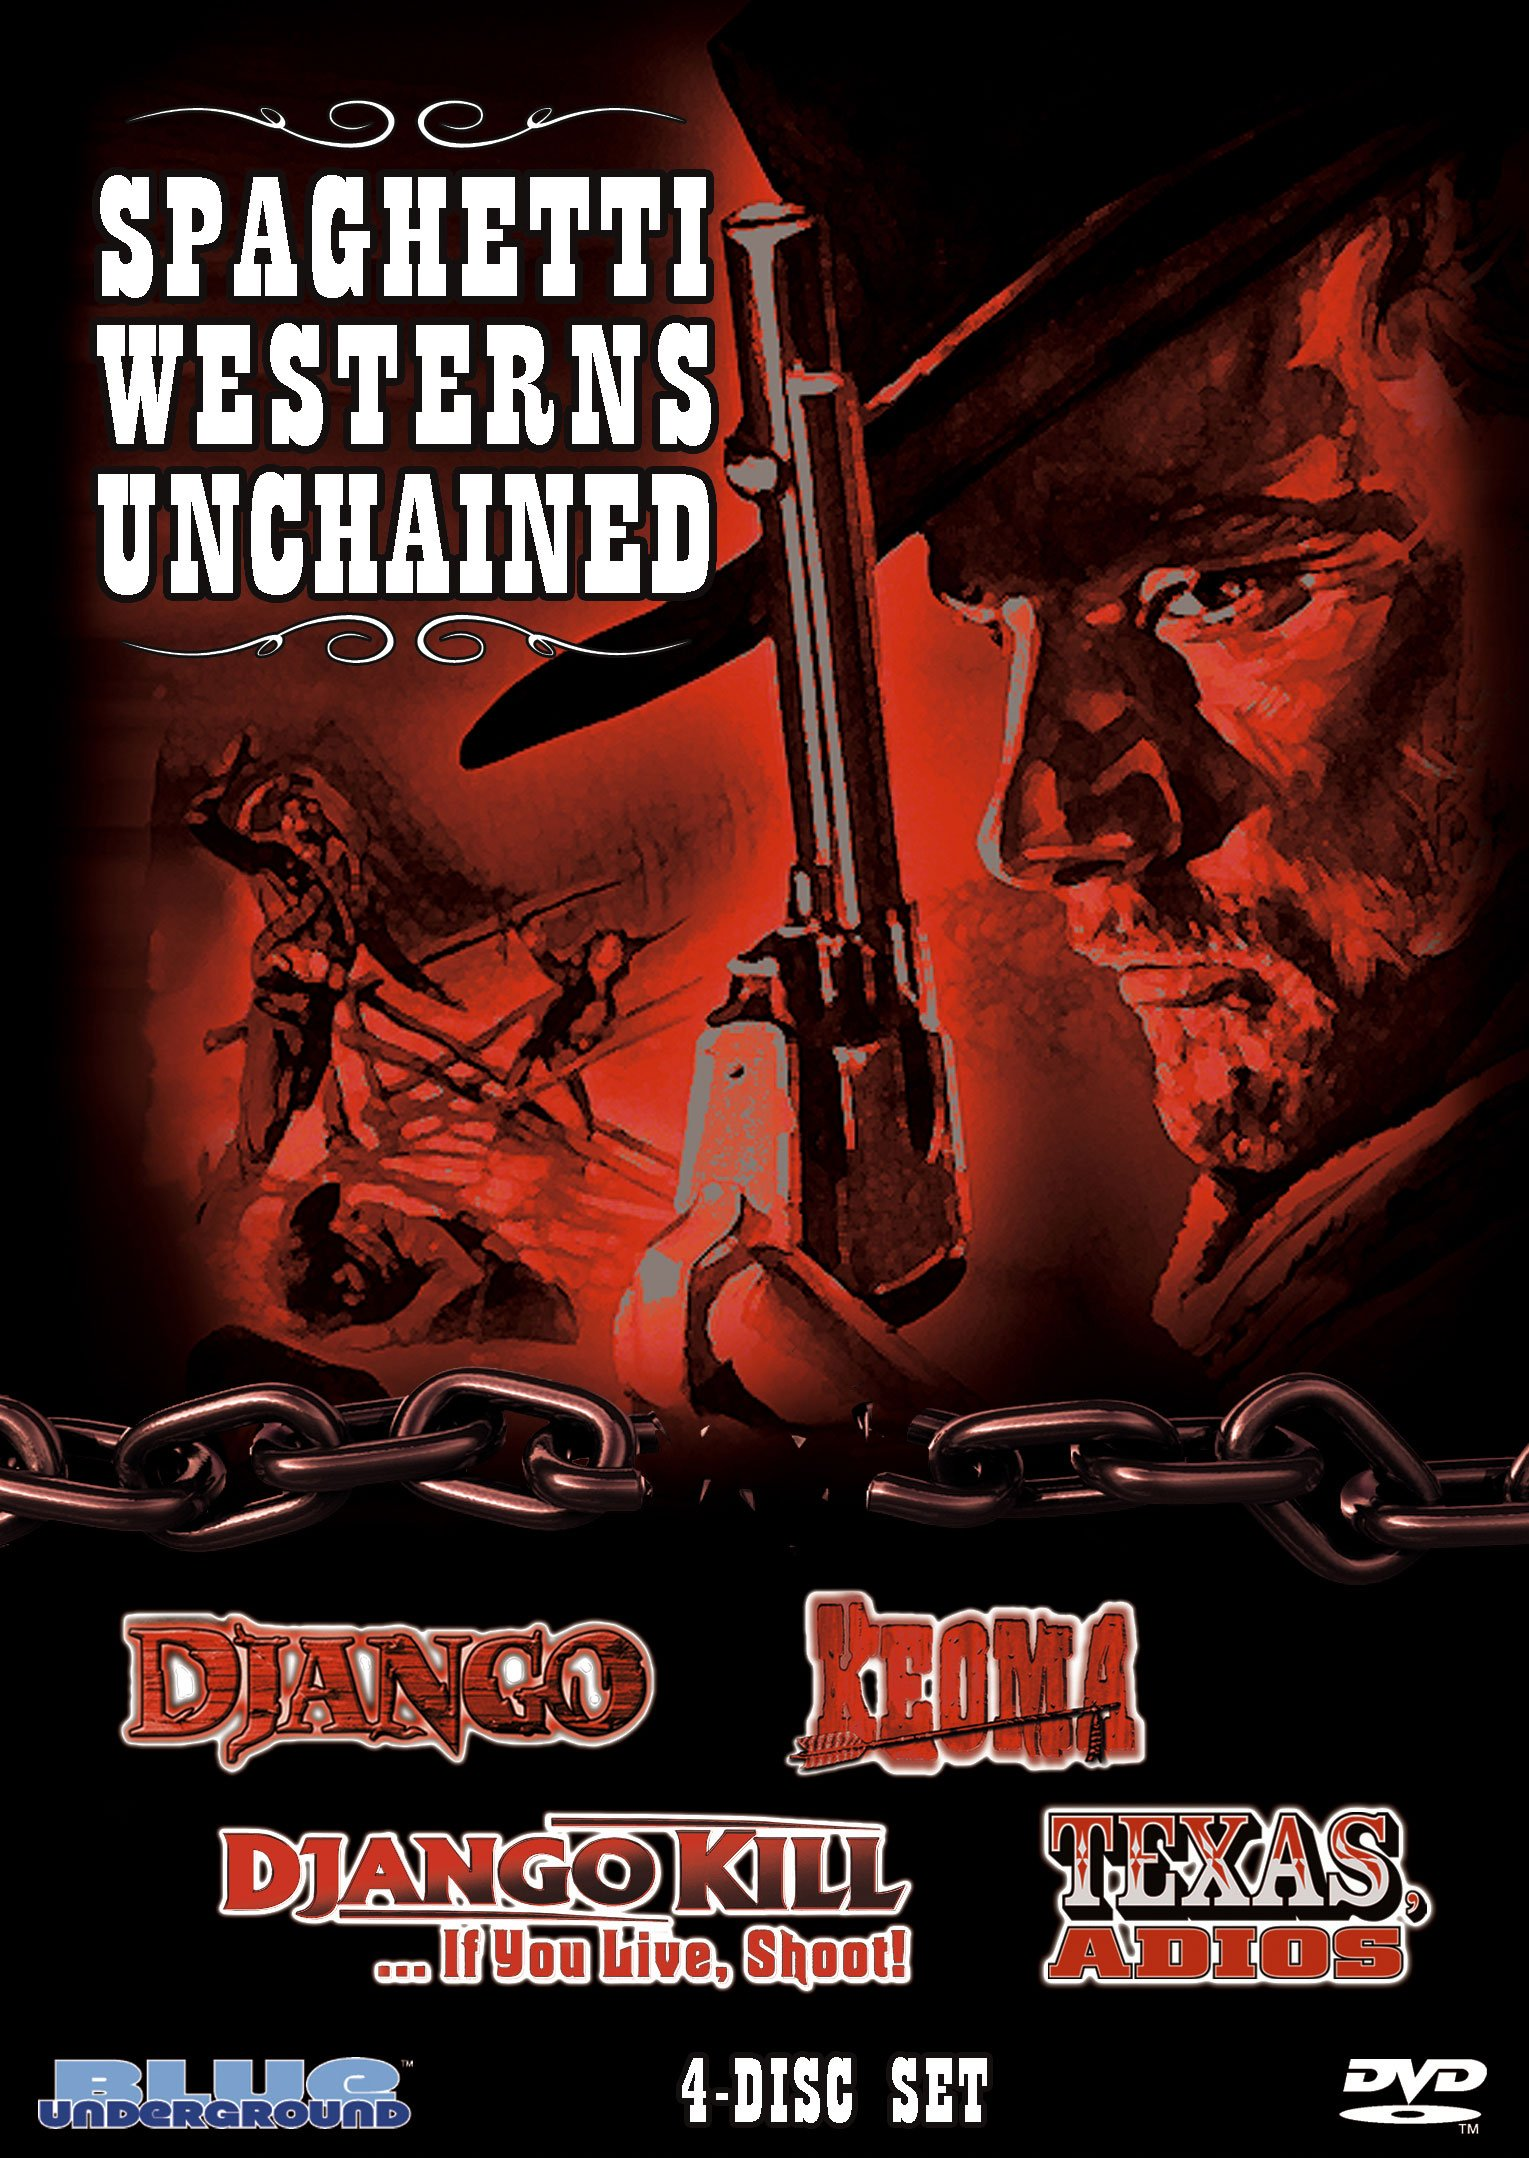 DVD : Spaghetti Westerns Unchained (Boxed Set, Subtitled, 4PC)